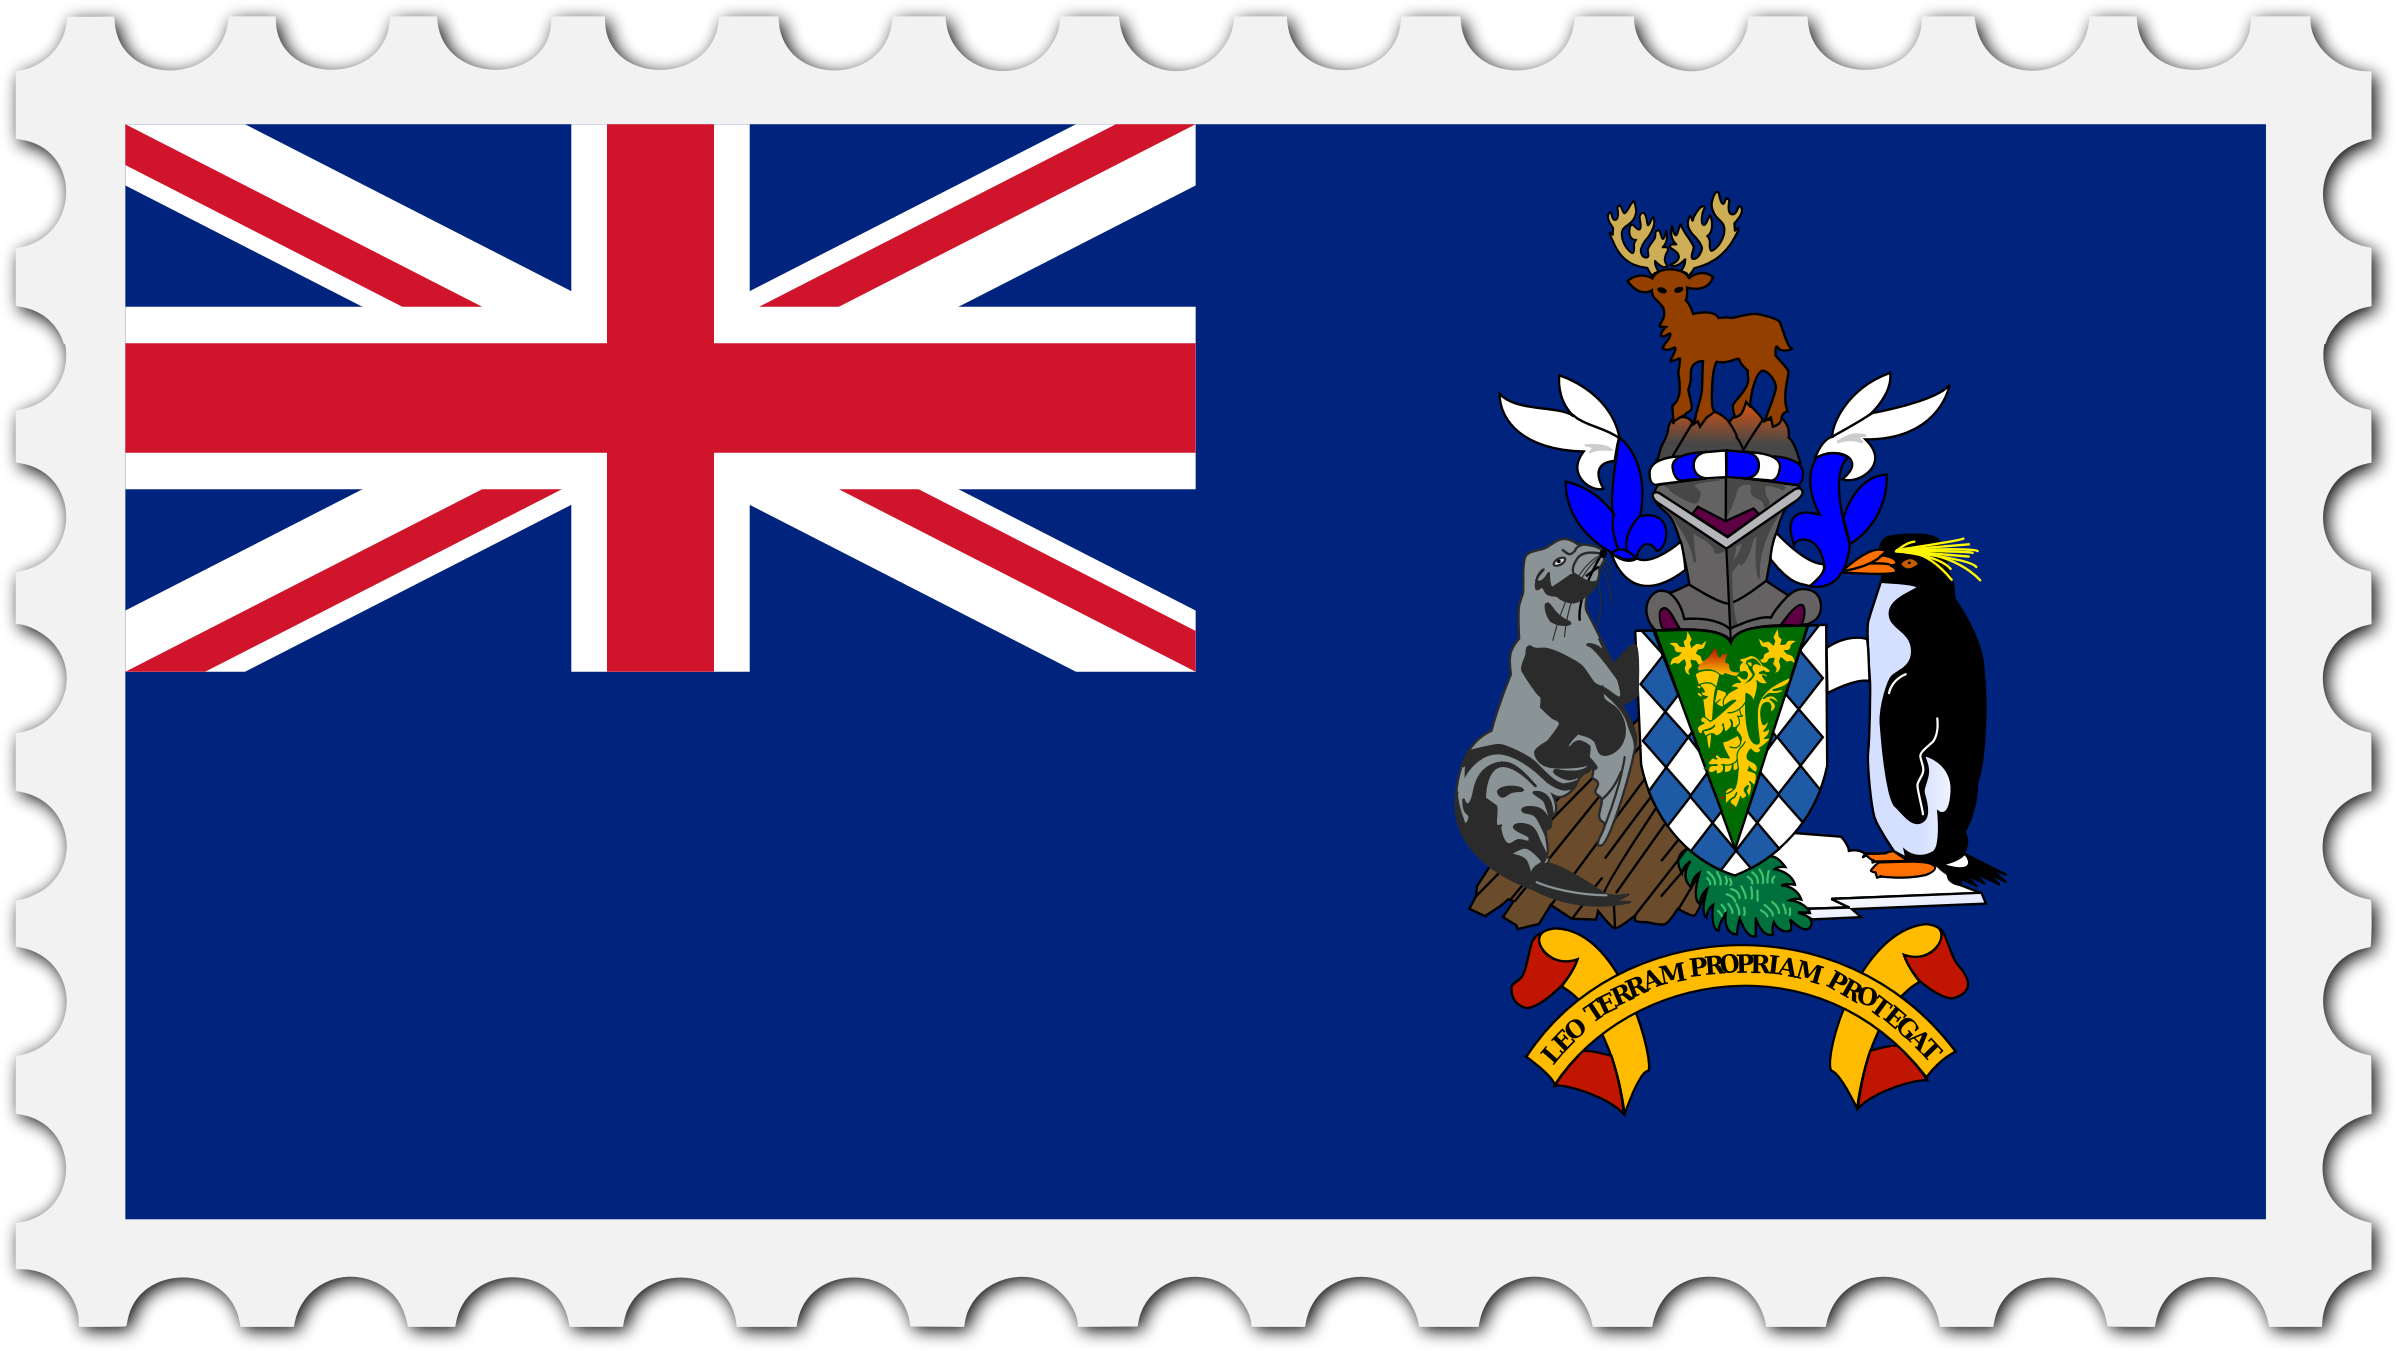 South Georgia and the Sandwich Islands flag stamp by Firkin